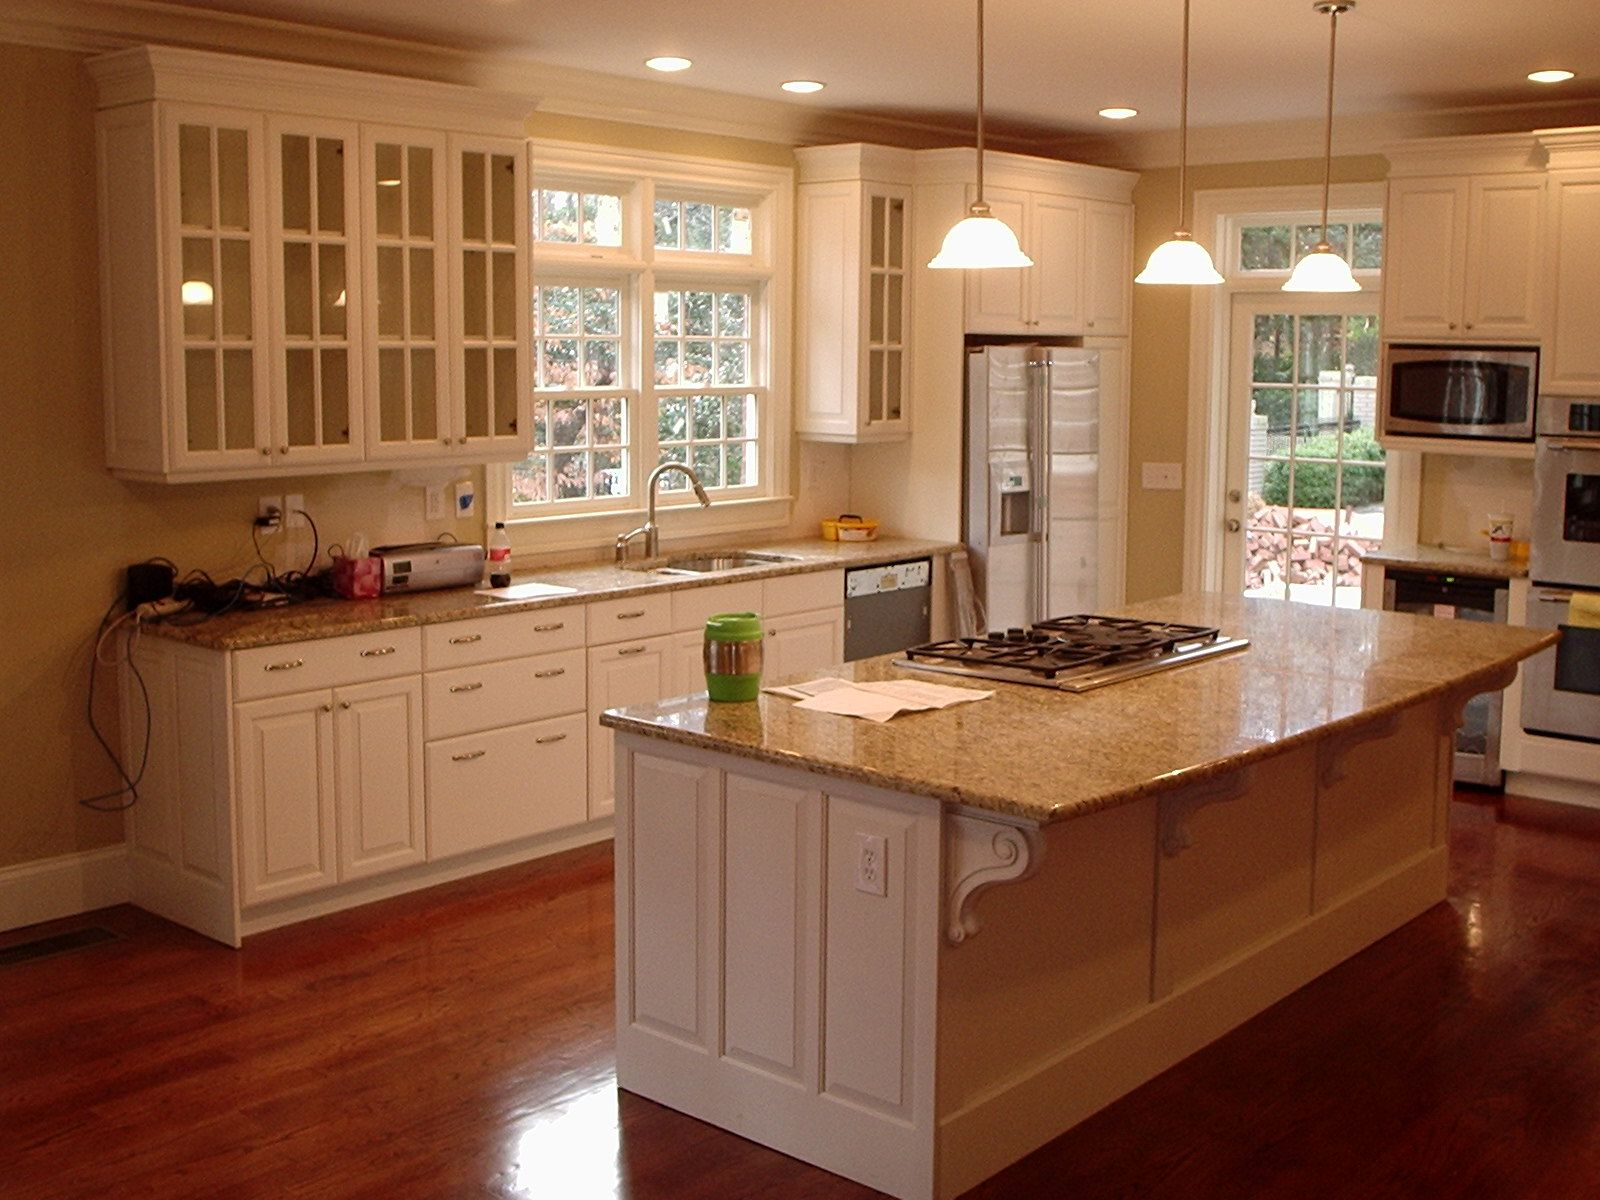 good Cabinet Designs For Kitchens #7: Top 25 Ideas About Kitchen Cabinets On Pinterest Cabinet Design .